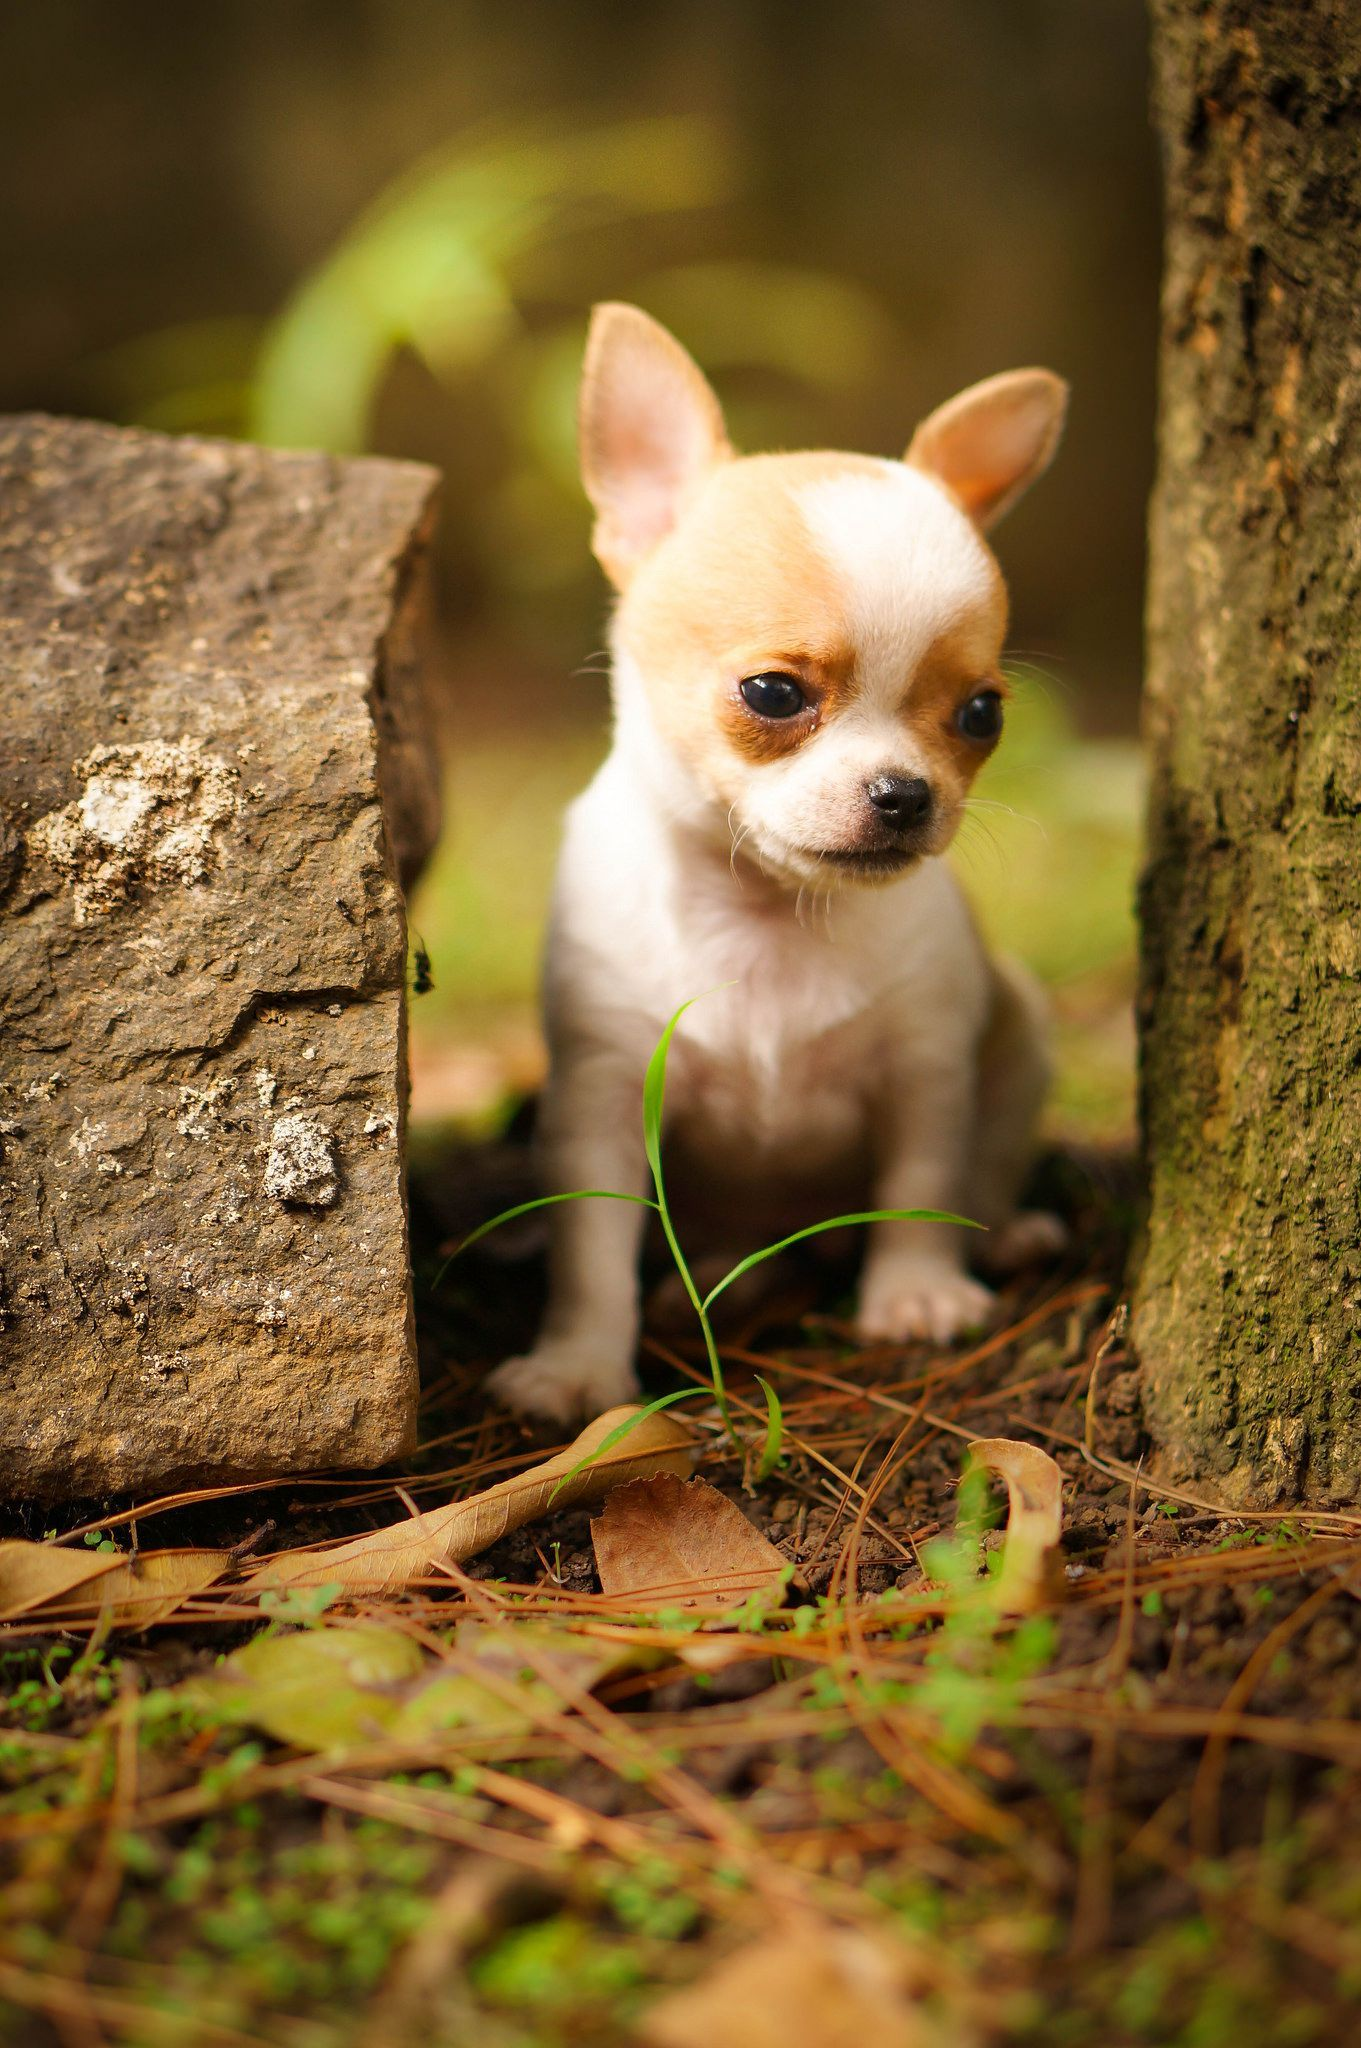 Tiny Brown White Male Chihuahua Shorthair He Has Very Short Body That Make Him Look Cute Chihuahua Puppies Cute Animals Chihuahua Dogs